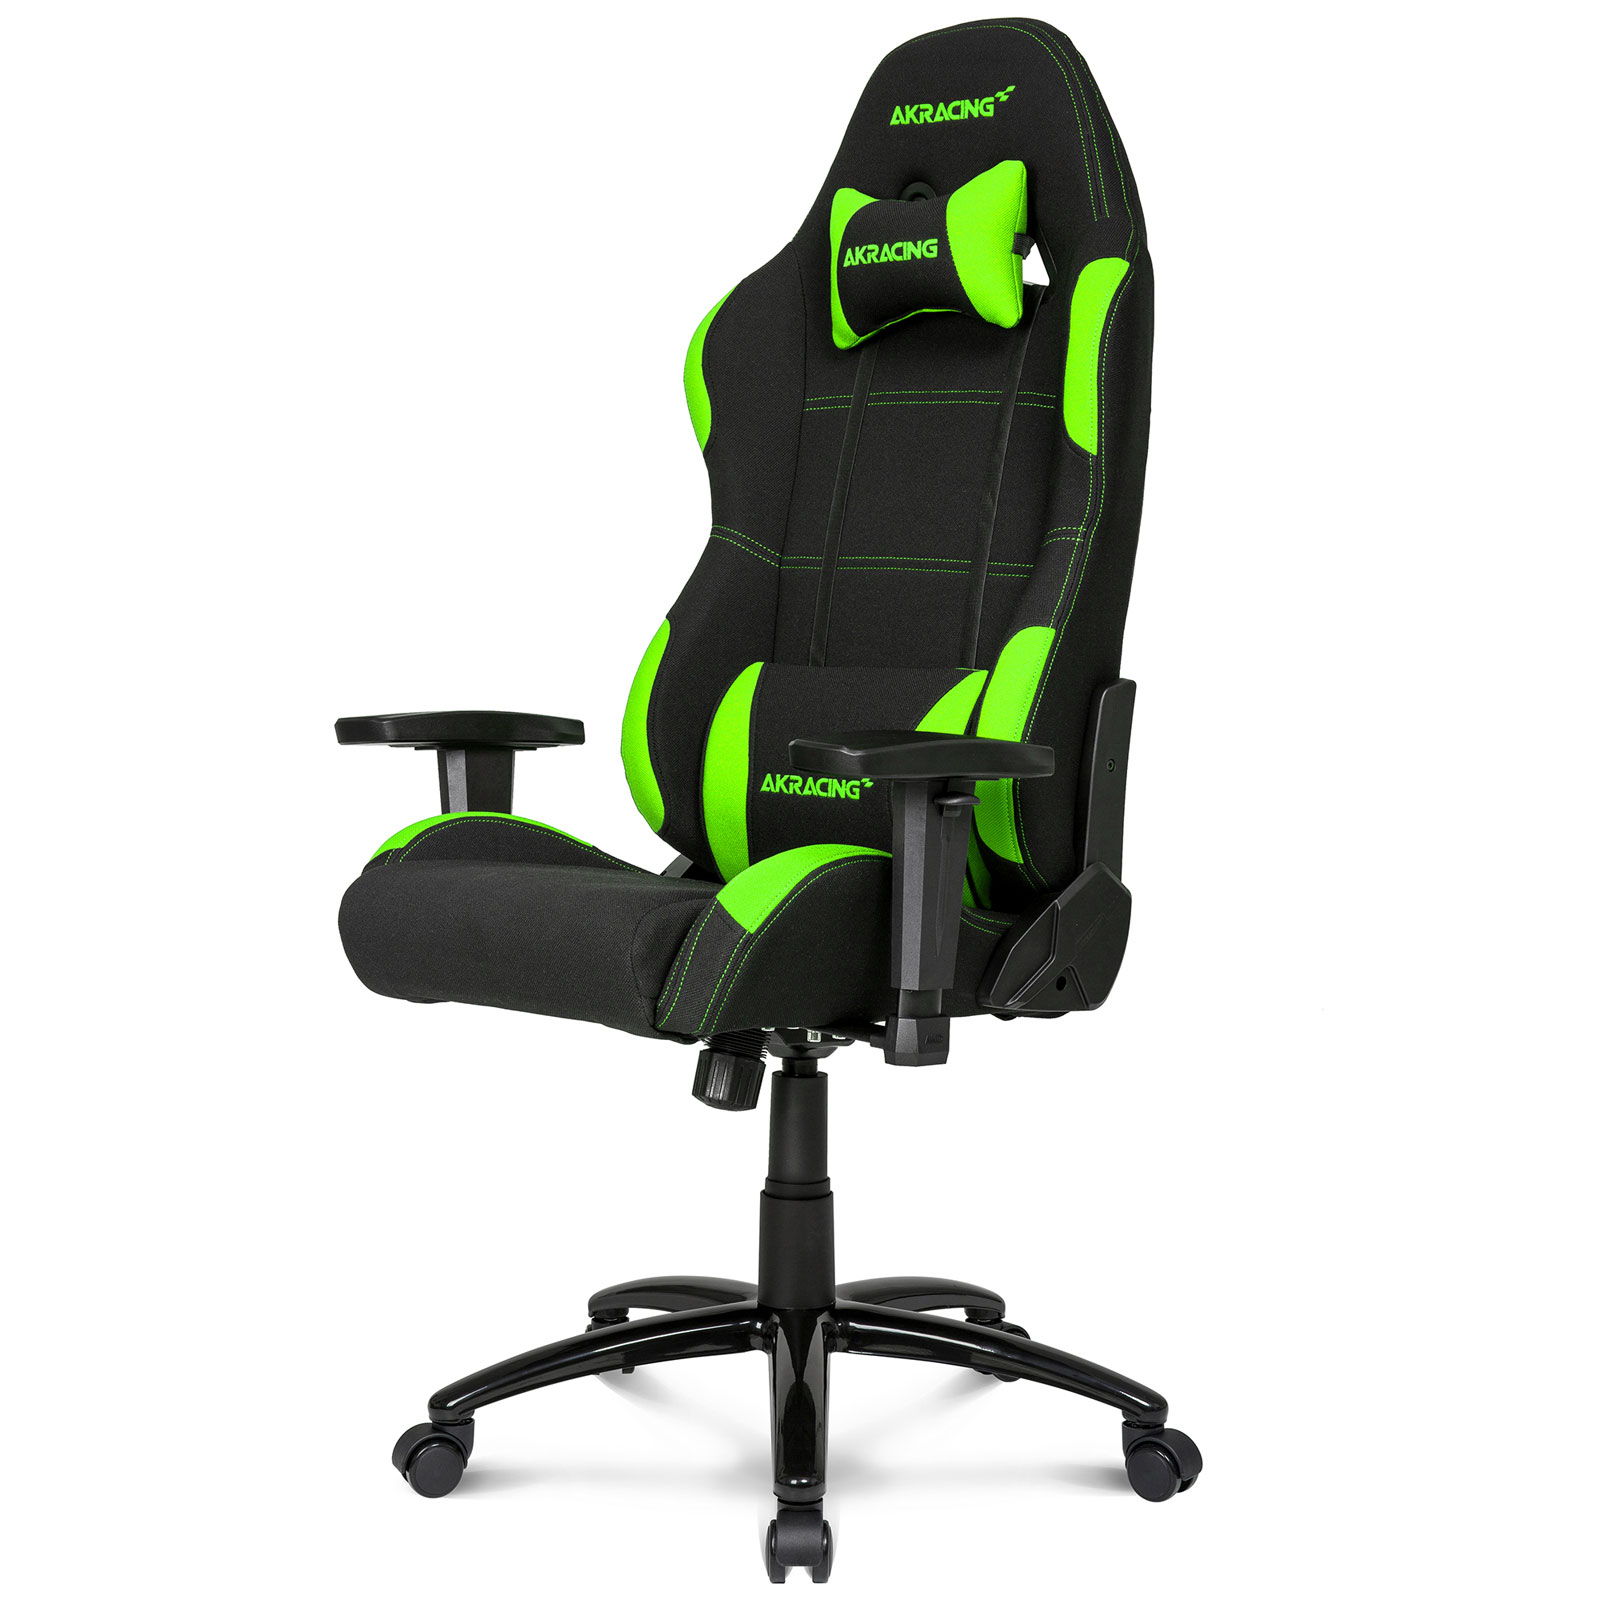 akracing gaming chair vert si ge pc akracing sur. Black Bedroom Furniture Sets. Home Design Ideas